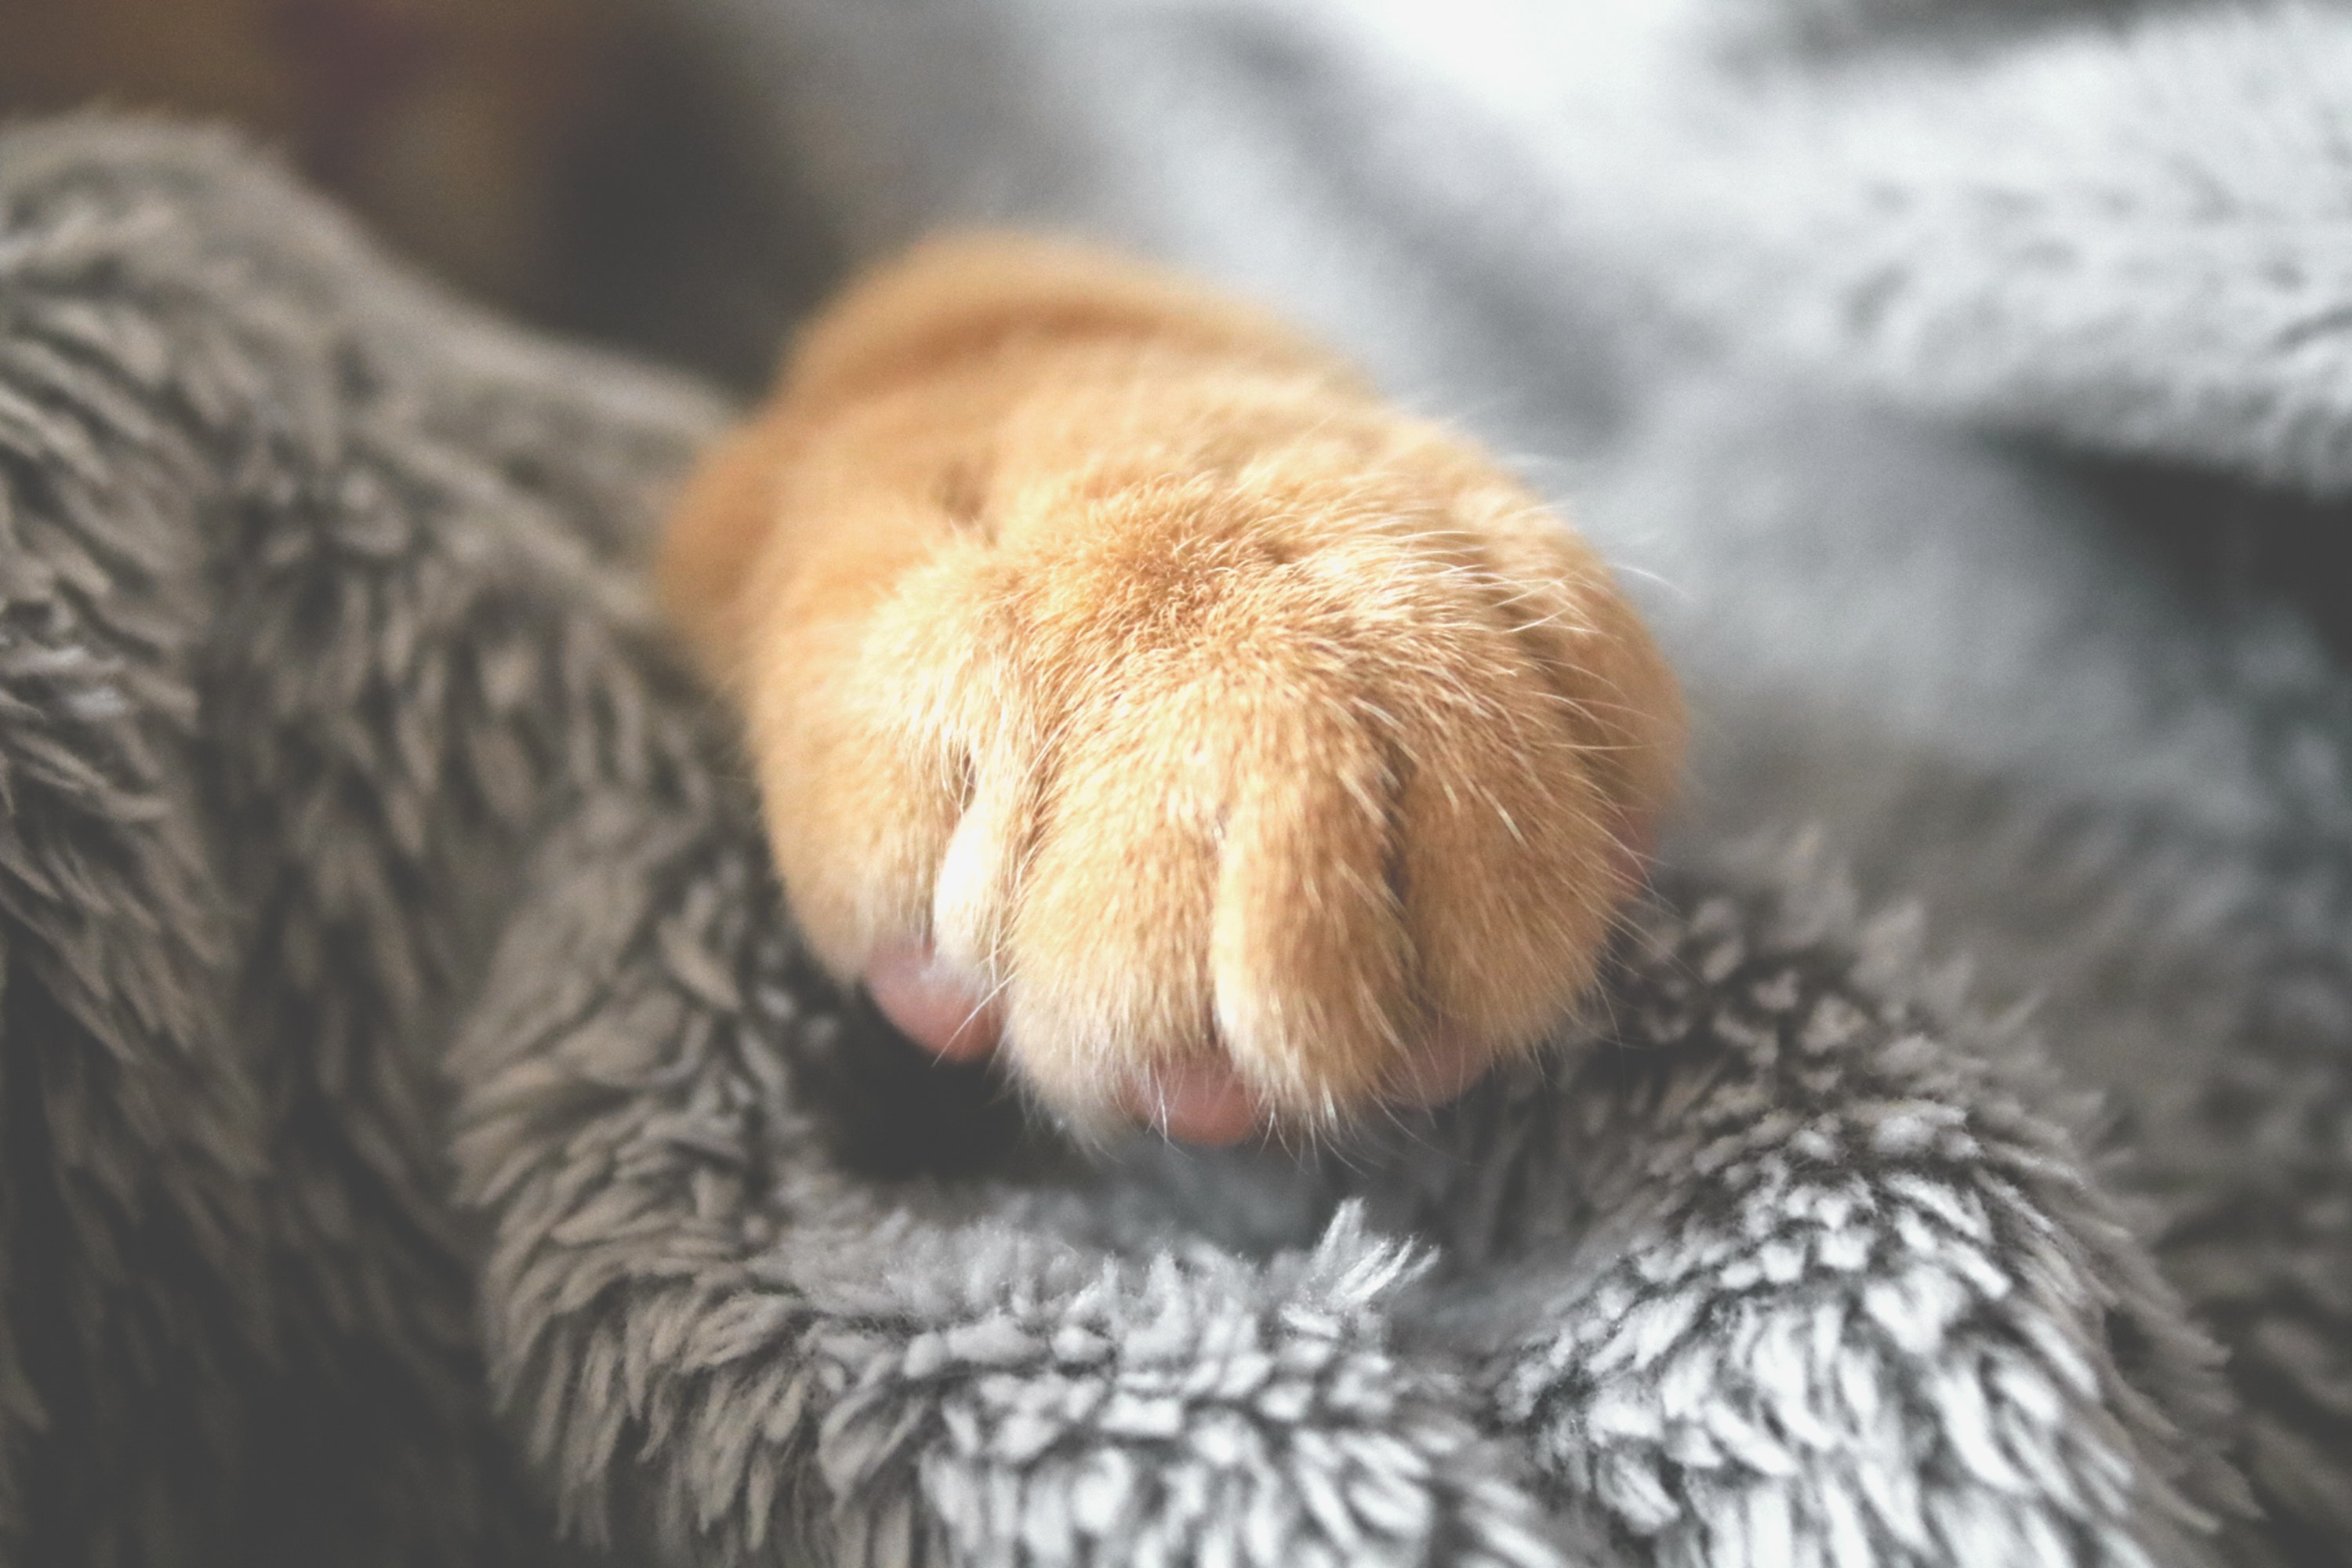 New cat checklist - getting ready for the introduction of your cat